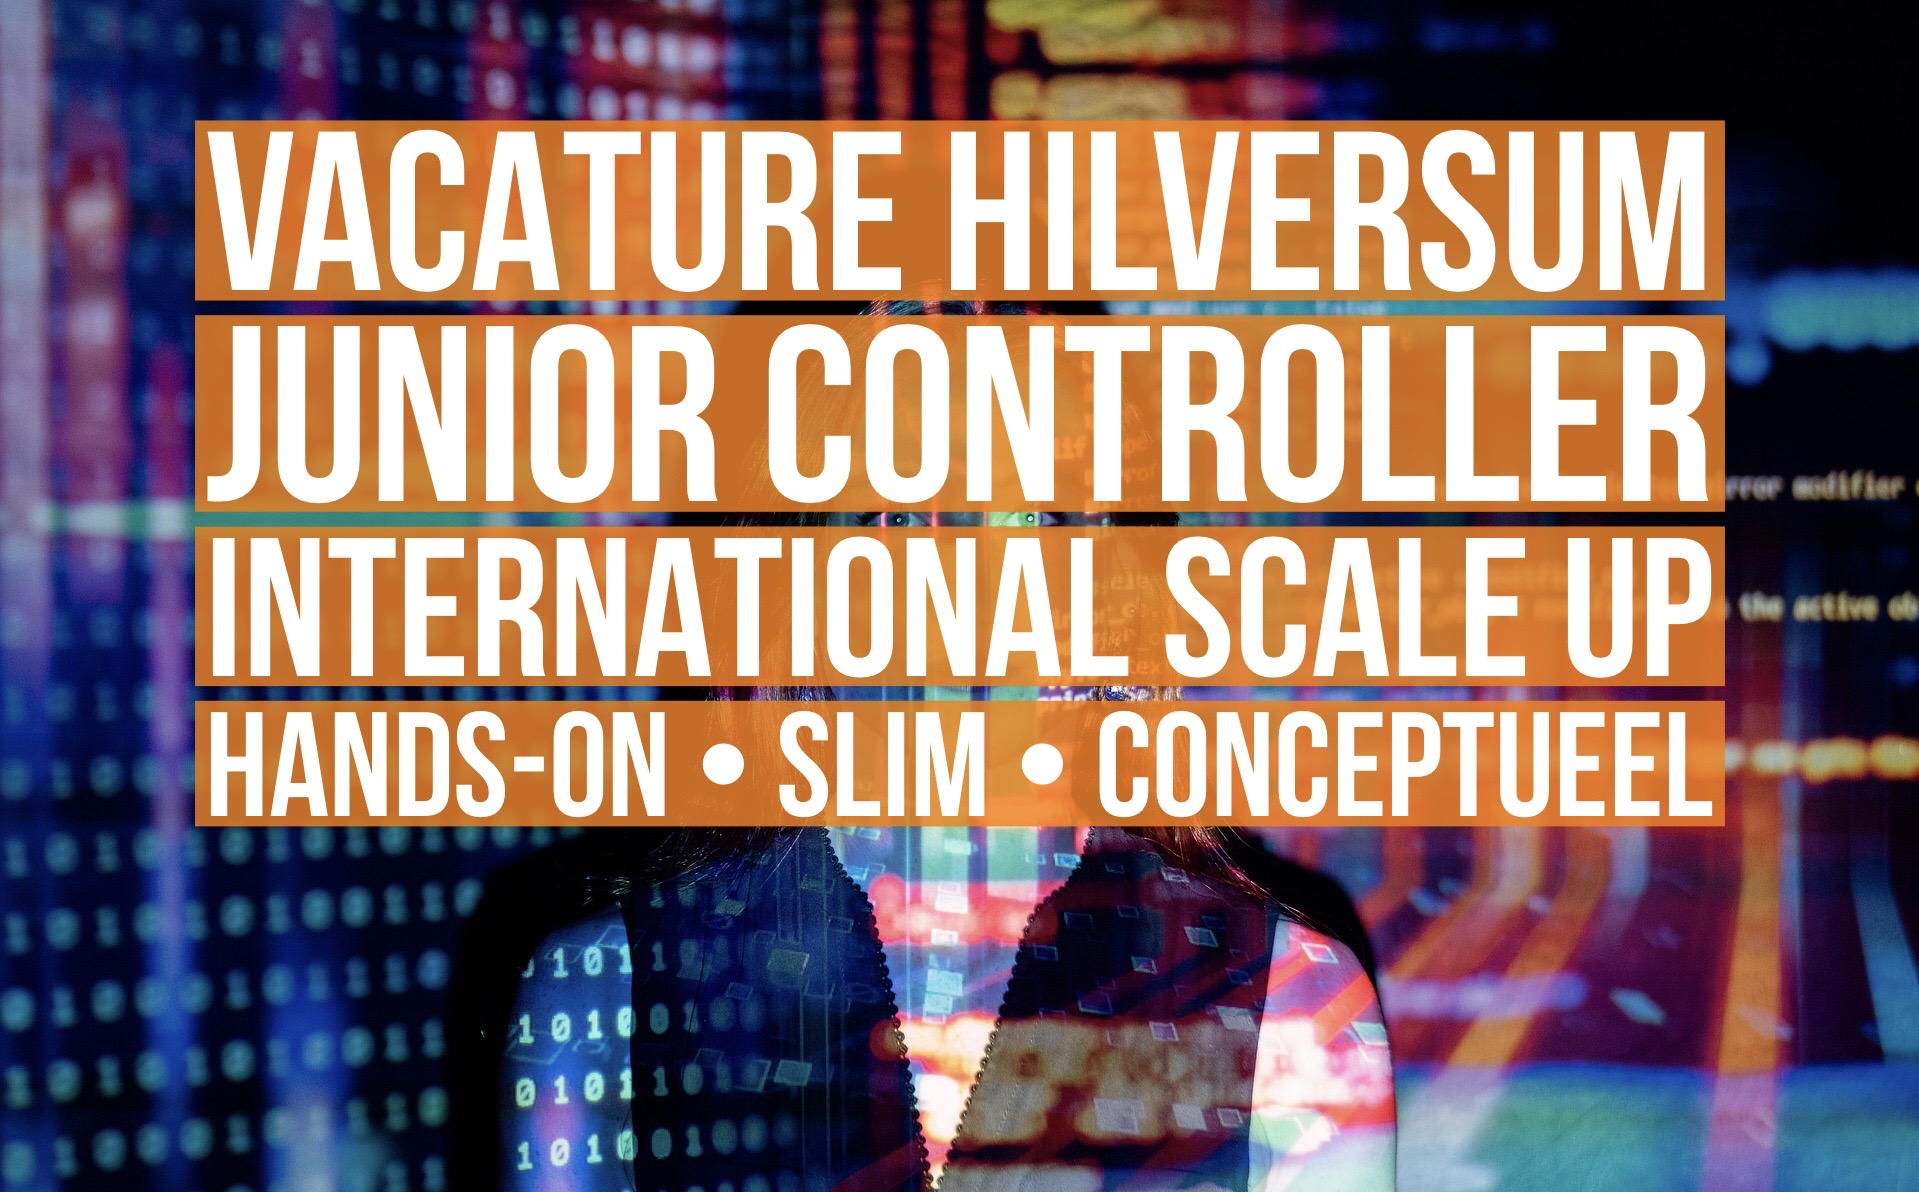 junior controller international scale up vacature hilversum hands-on slim conceptueel